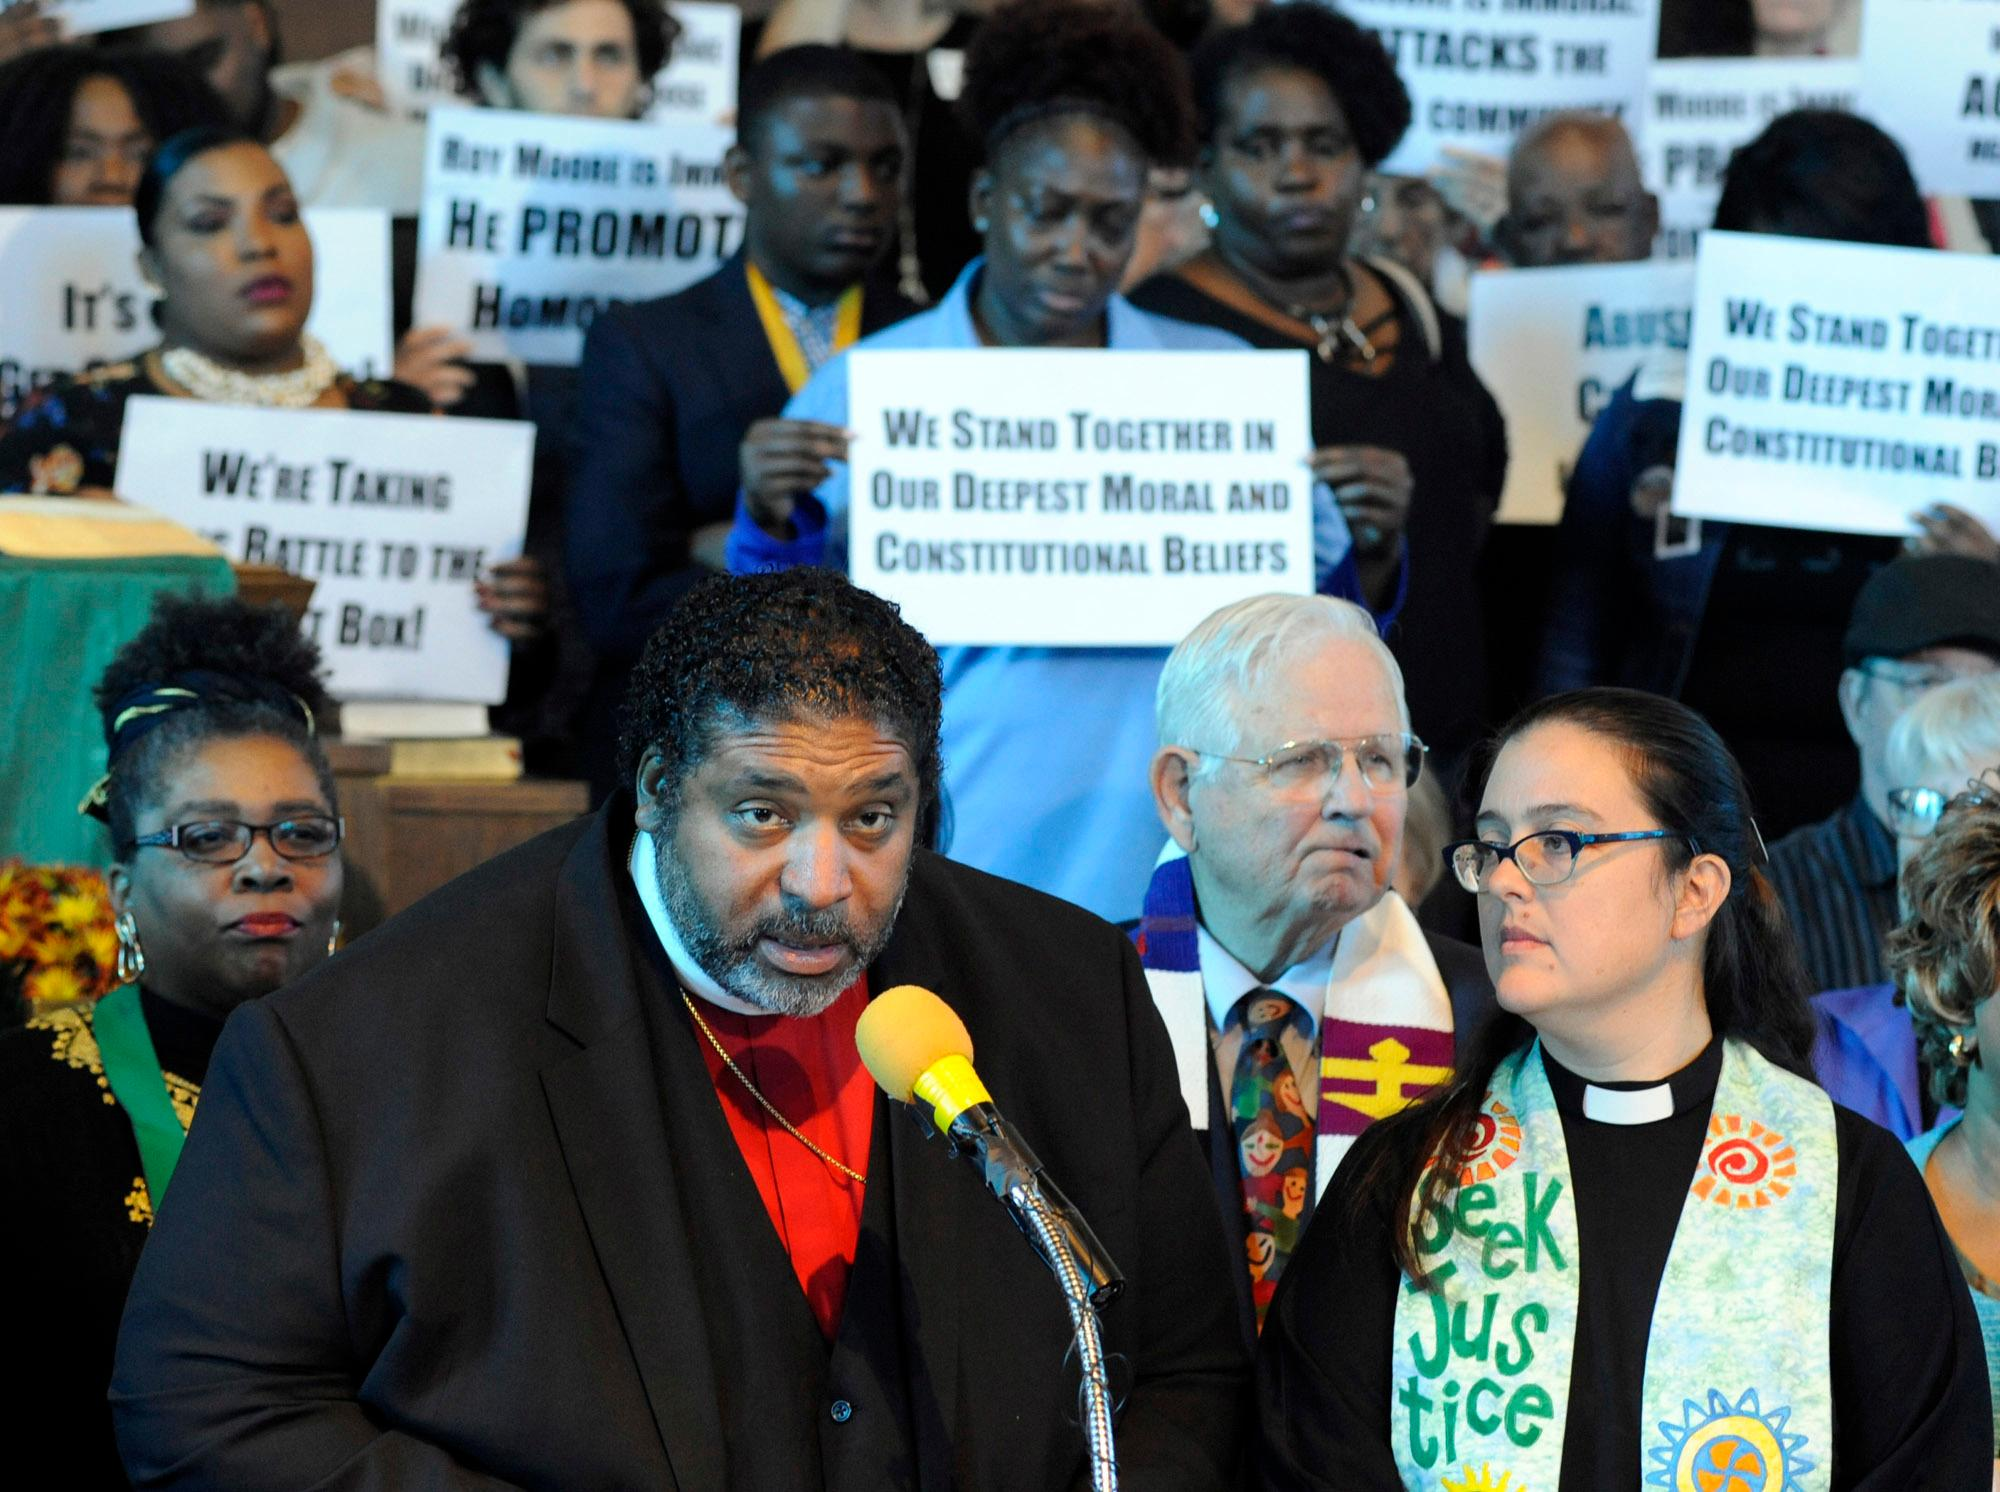 The Rev. William J. Barber  speaks at a rally in opposition to Republican U.S. Senate candidate Roy Moore at a church in Birmingham, Ala., on Saturday, Nov. 18, 2017.  Barber and other speakers criticized Moore over allegations he made improper sexual advances toward teenage girls decades ago.  (AP Photo/Jay Reeves)